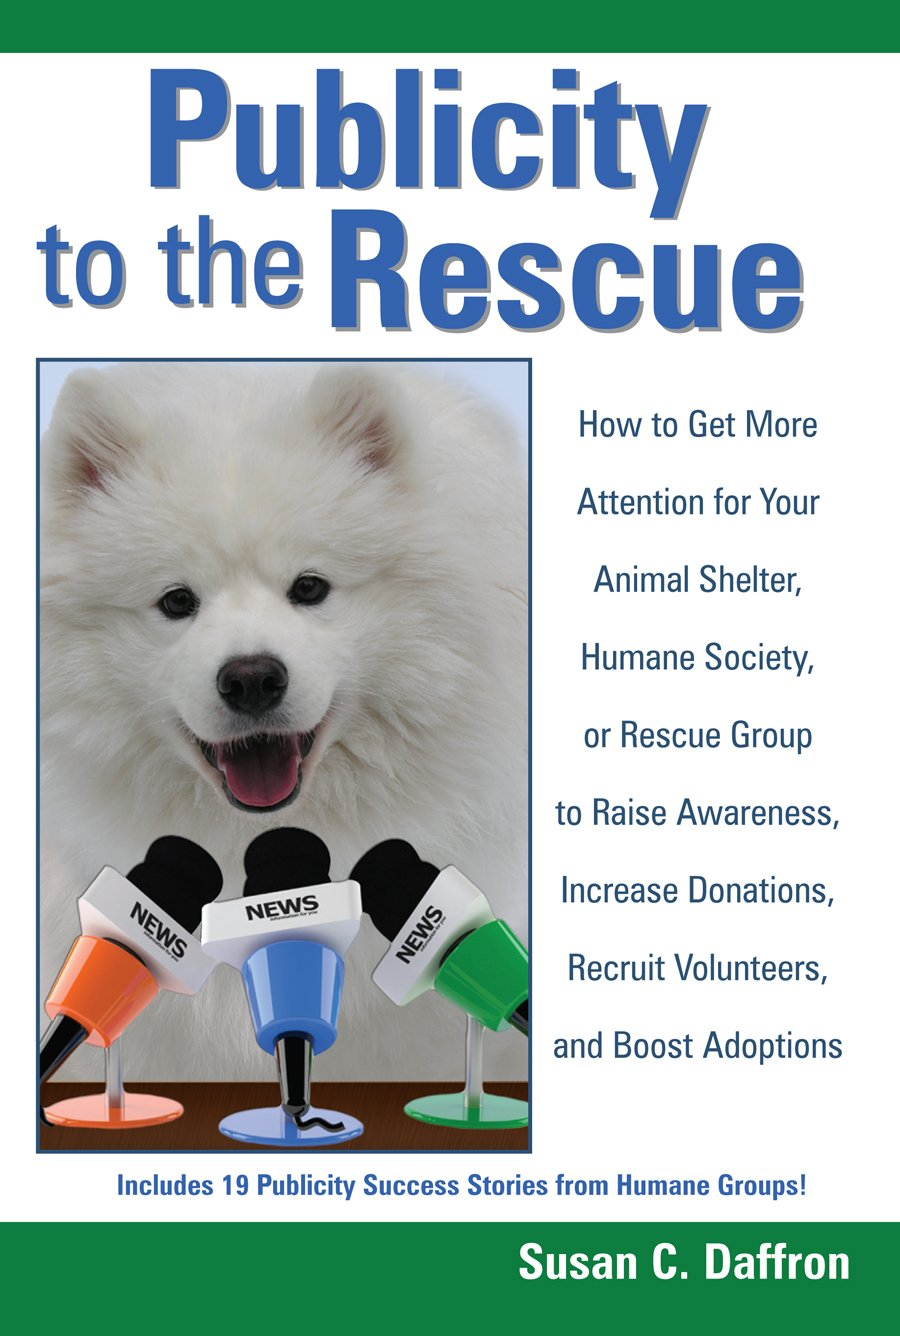 Download Publicity to the Rescue: How to Get More Attention for Your Animal Shelter, Humane Society,  or Rescue Group  to Raise Awareness, Increase Donations, Recruit Volunteers, and Boost Adoptions ebook